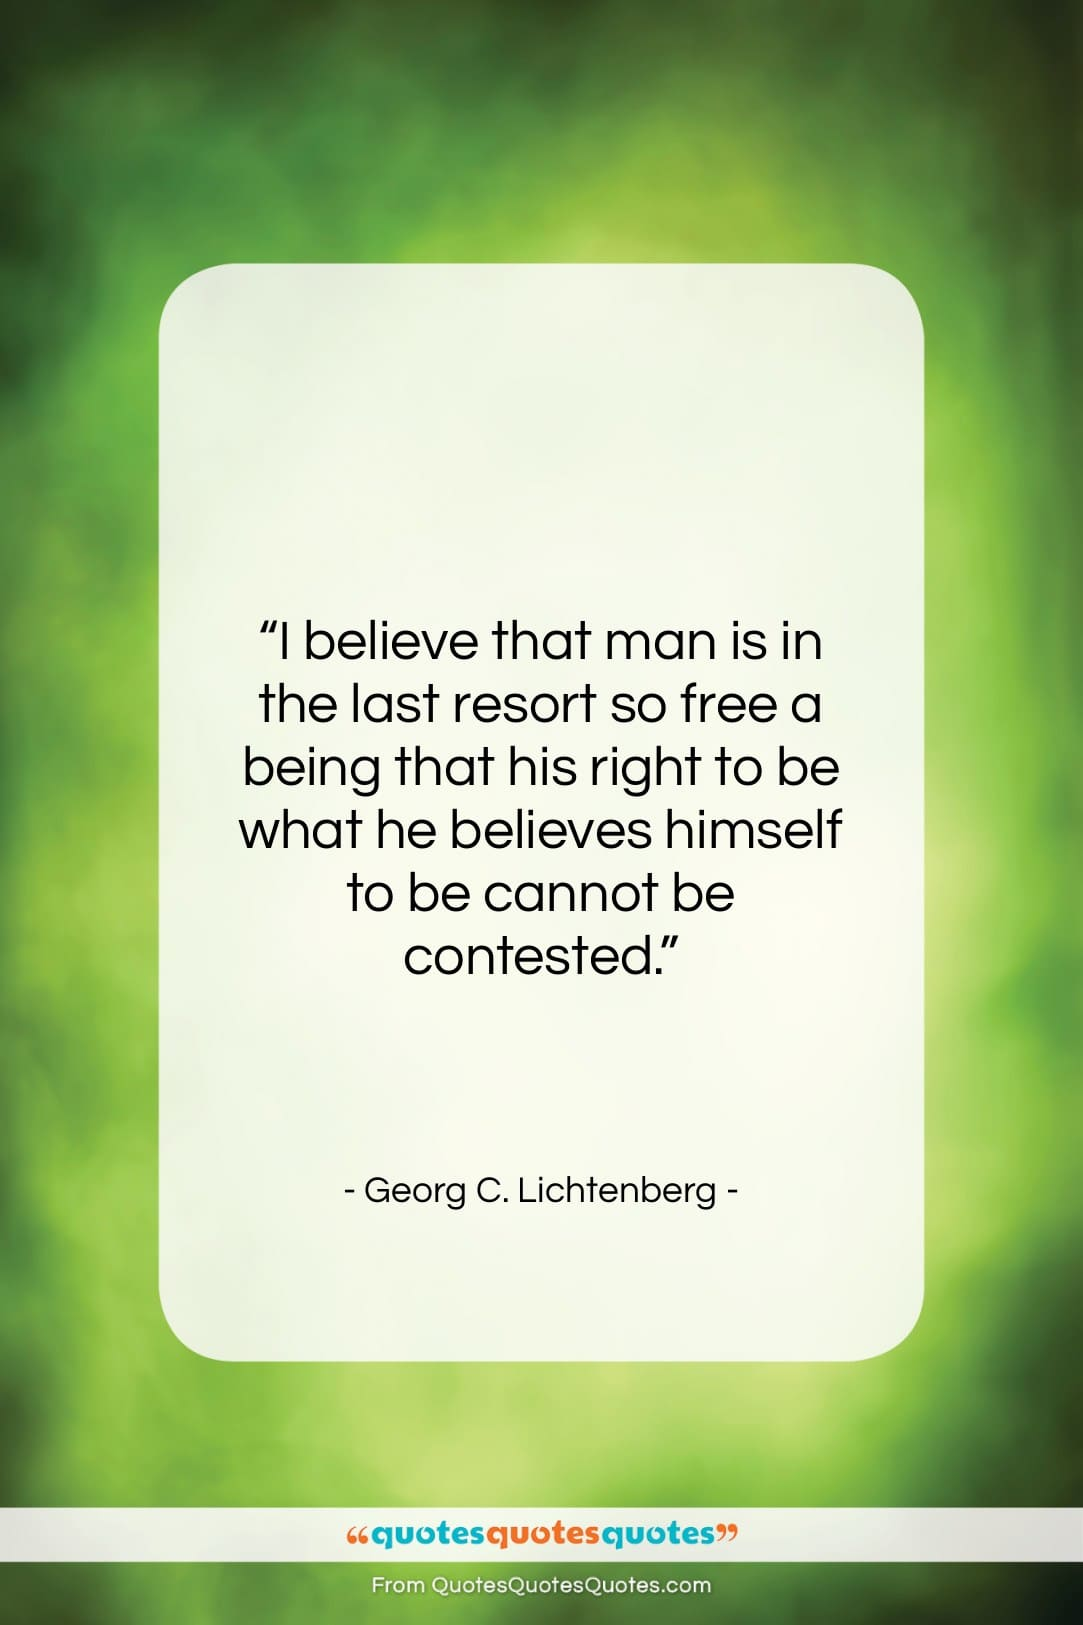 """Georg C. Lichtenberg quote: """"I believe that man is in the…""""- at QuotesQuotesQuotes.com"""